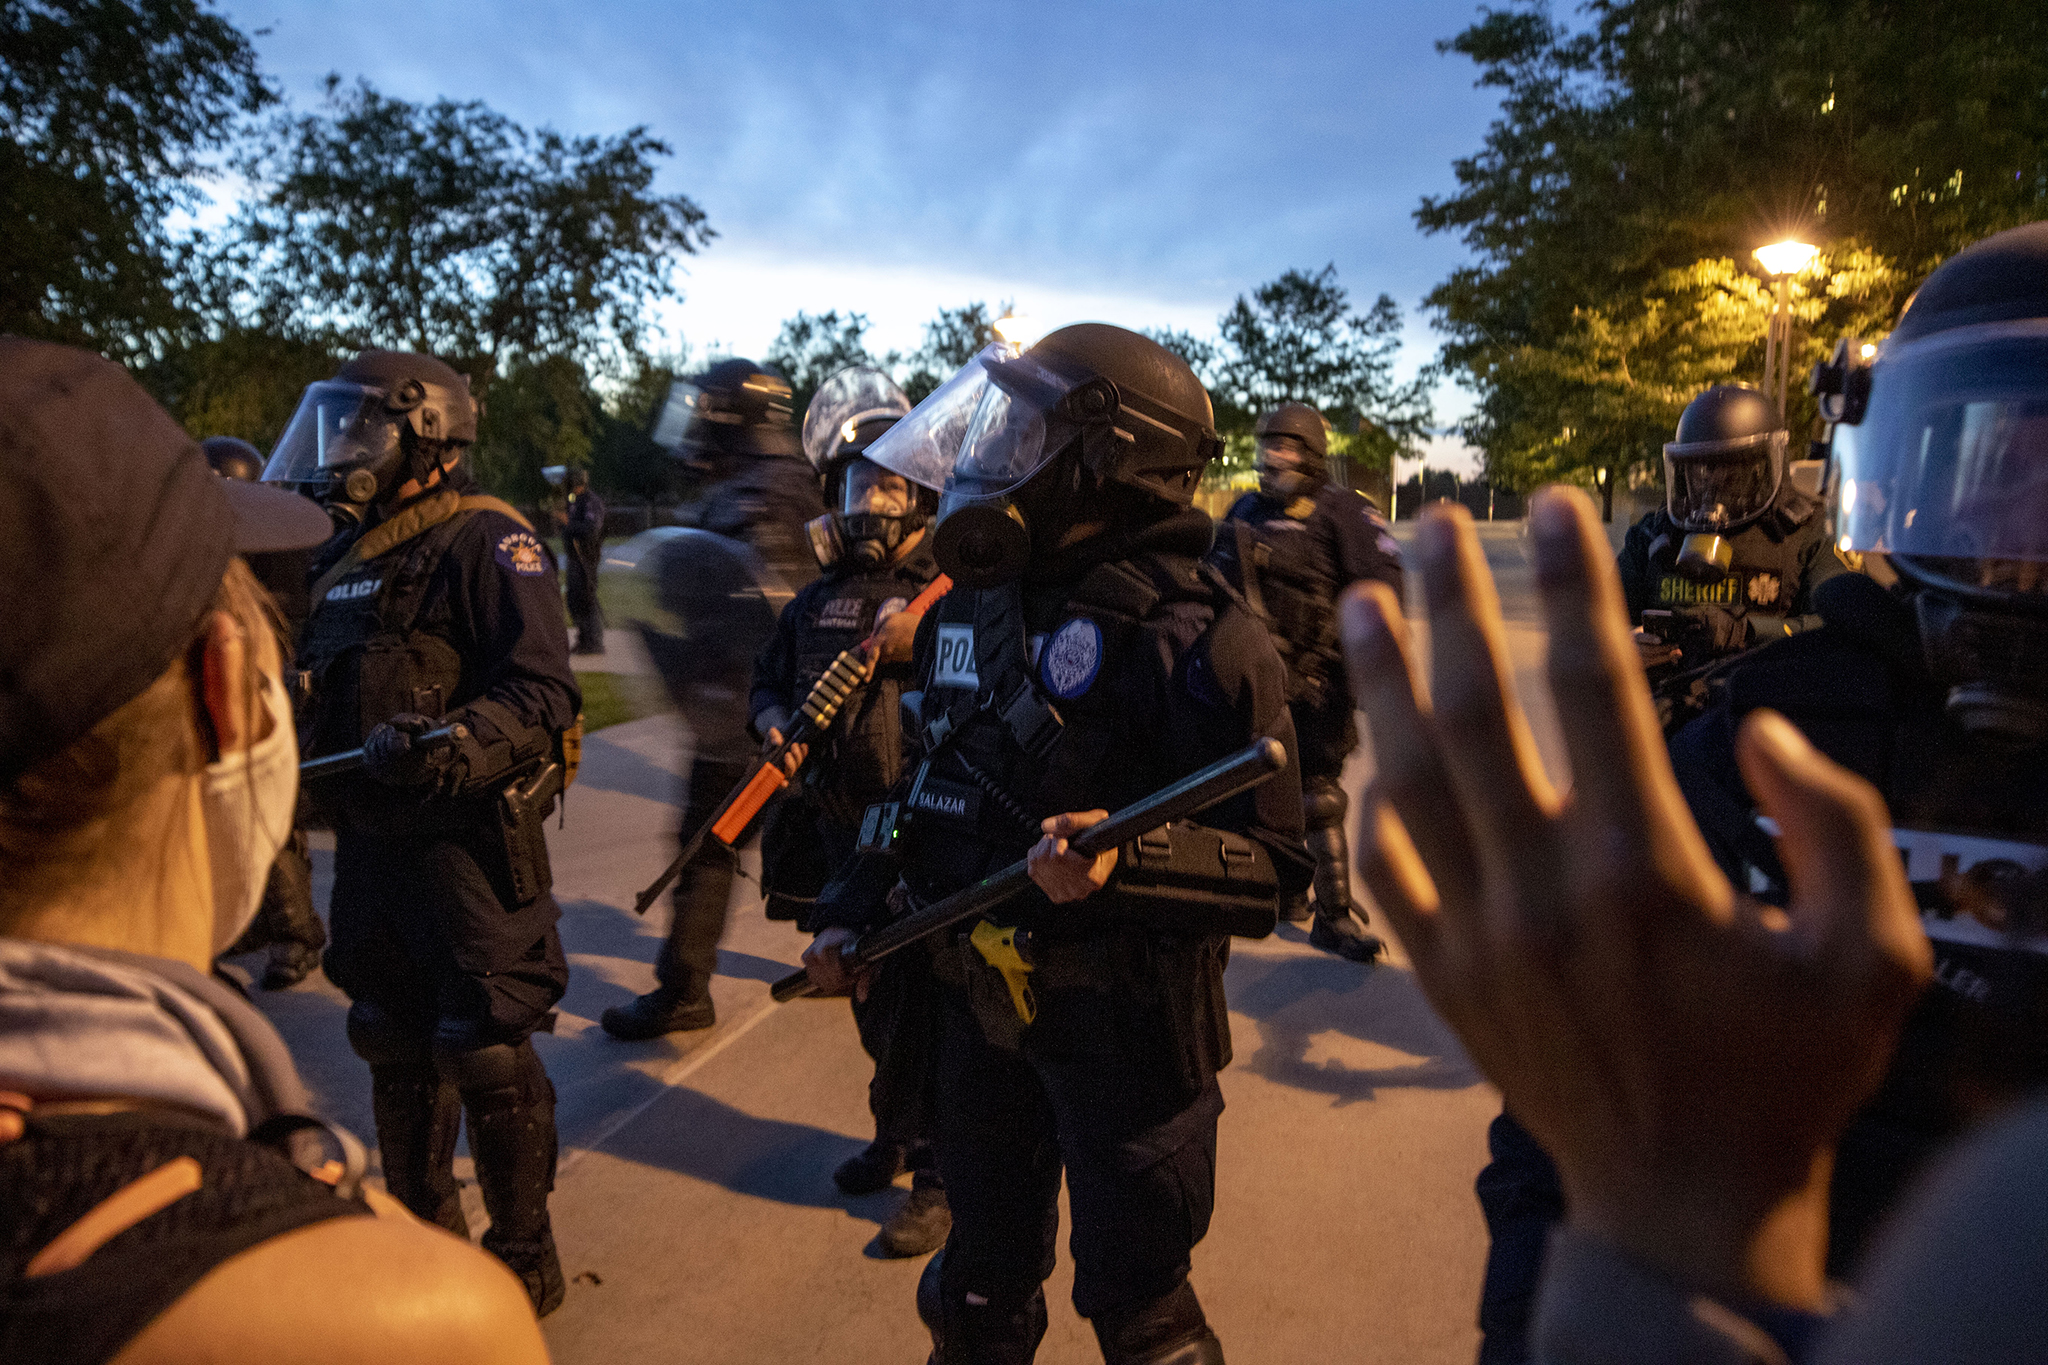 Aurora Police officers push protesters and musicians away from the municipal complex's lawn after a series of rallies and protests demanding justice for Elijah McClain. June 27, 2020.